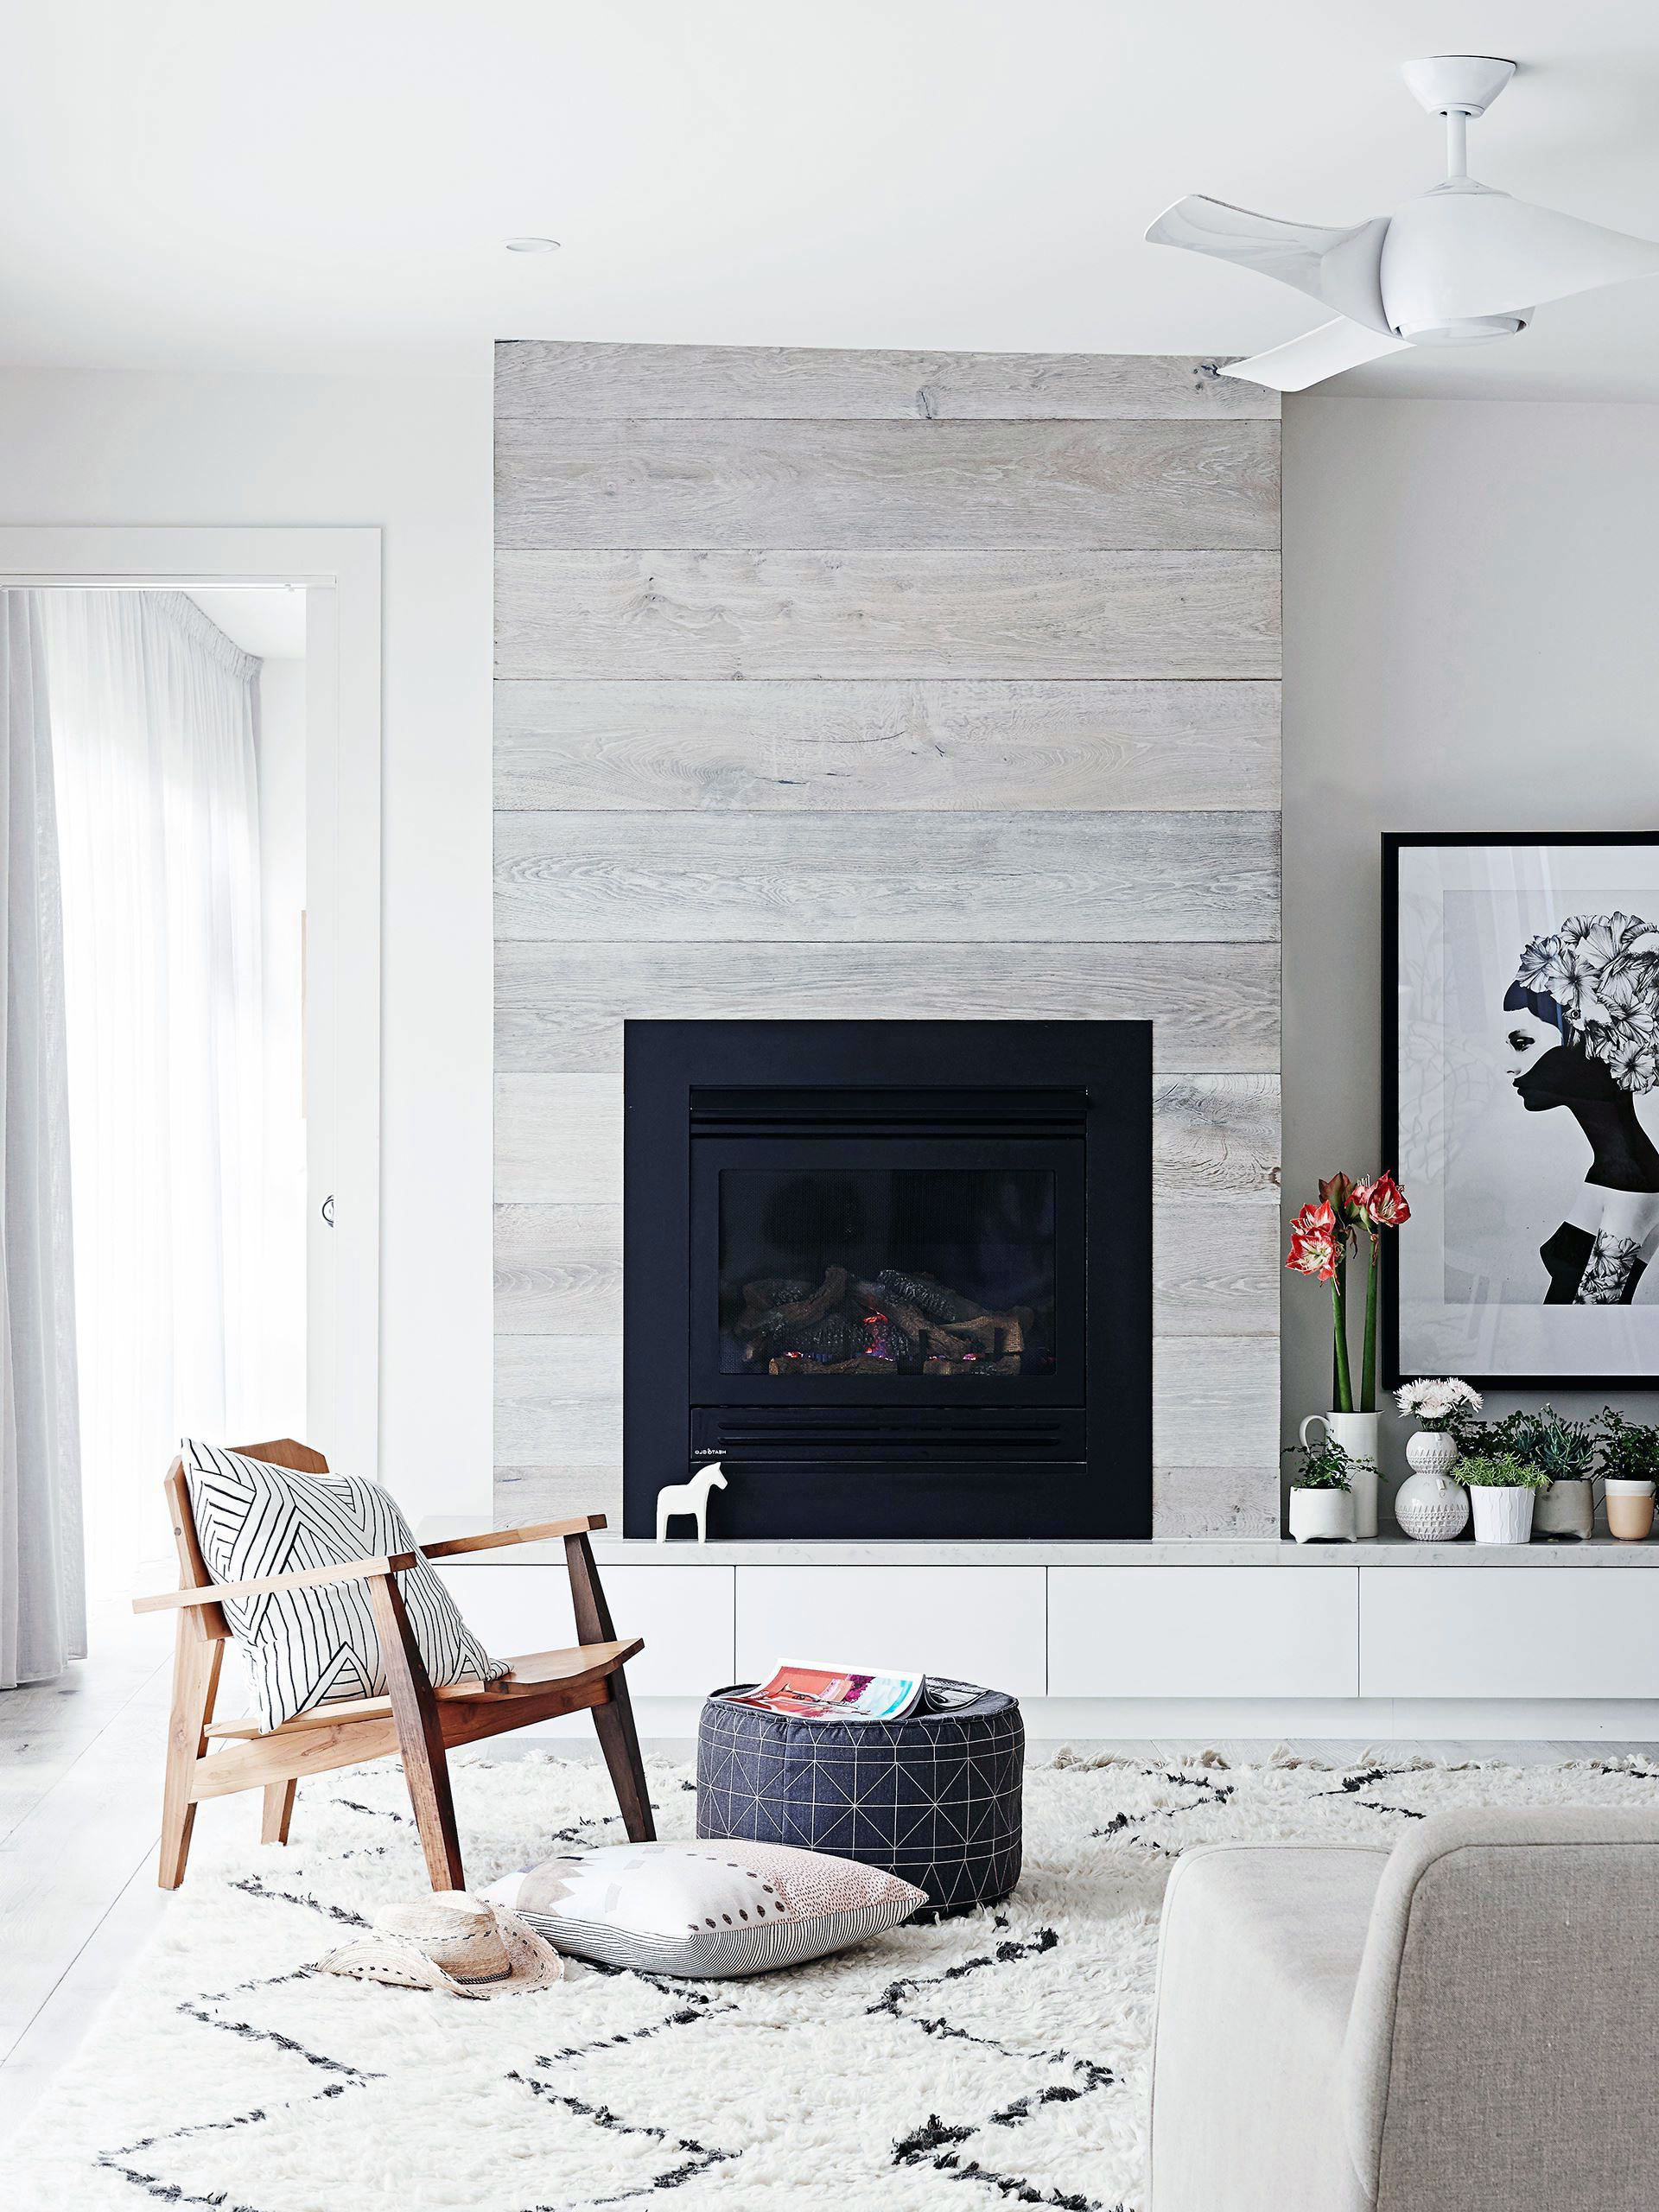 43 Amazing Fireplace Ideas For Scandinavian Living Rooms In